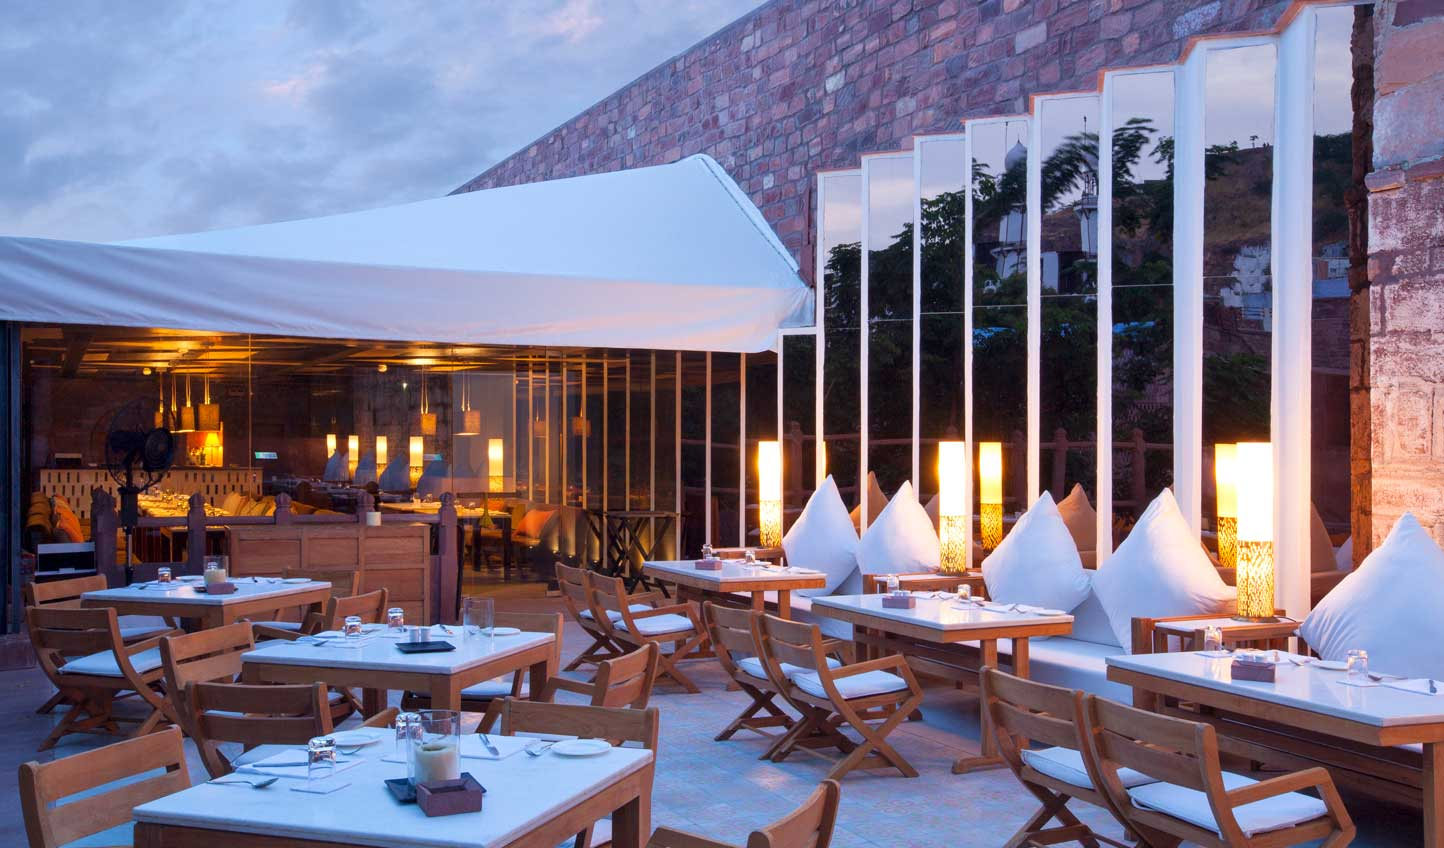 Dine beneath the stars at Raas Hotel